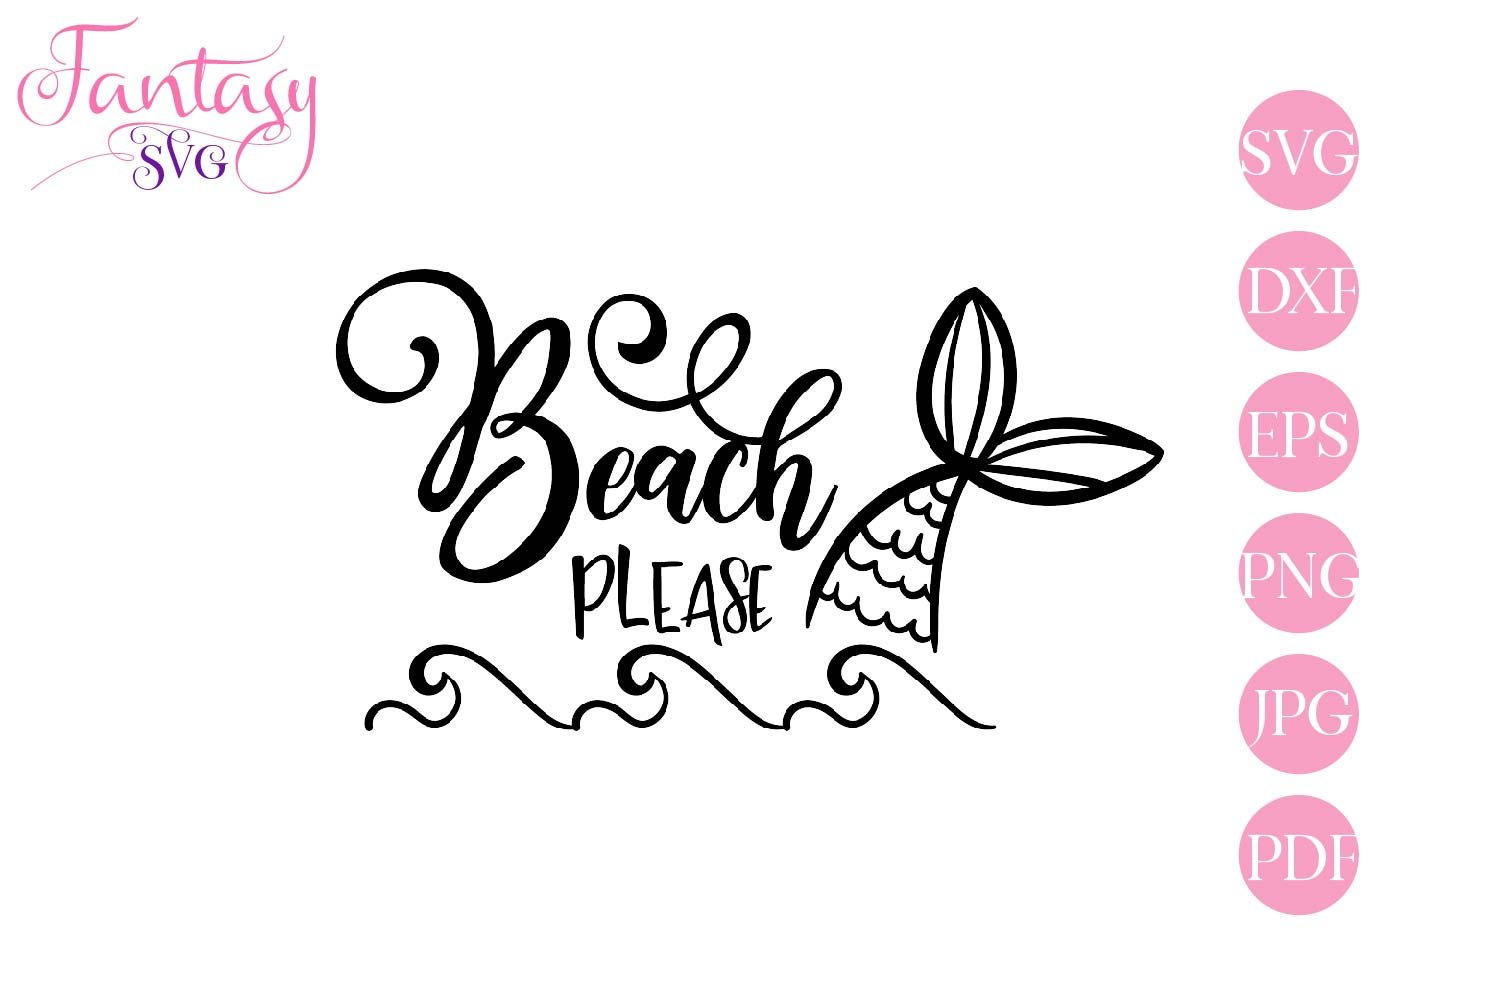 Beach Please Svg Cut File 256278 Svgs Design Bundles